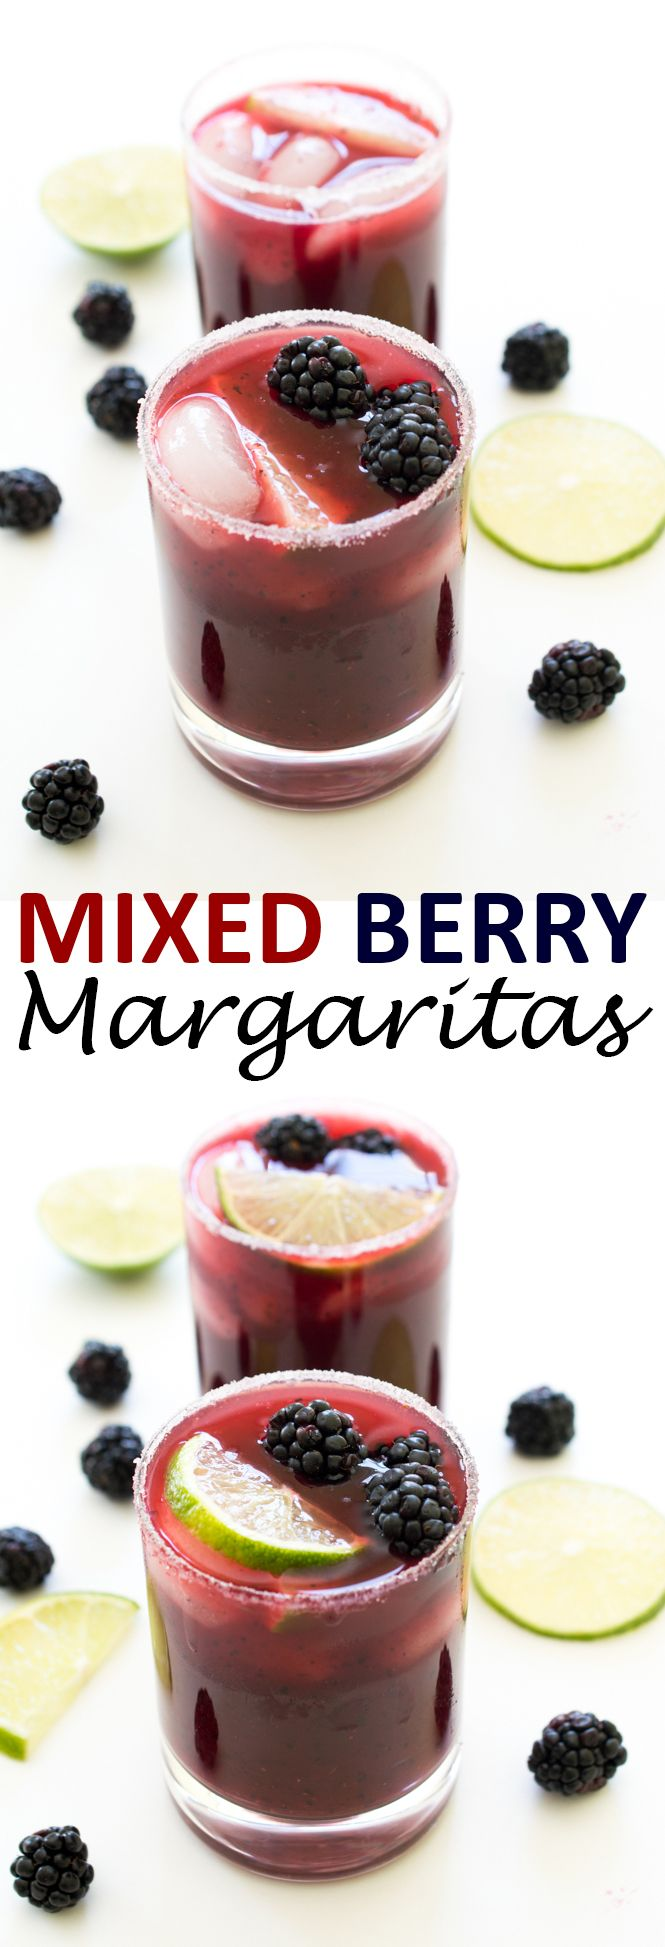 Colorful Mixed Berry Margaritas. Loaded with fresh blueberries, cherries and blackberries.